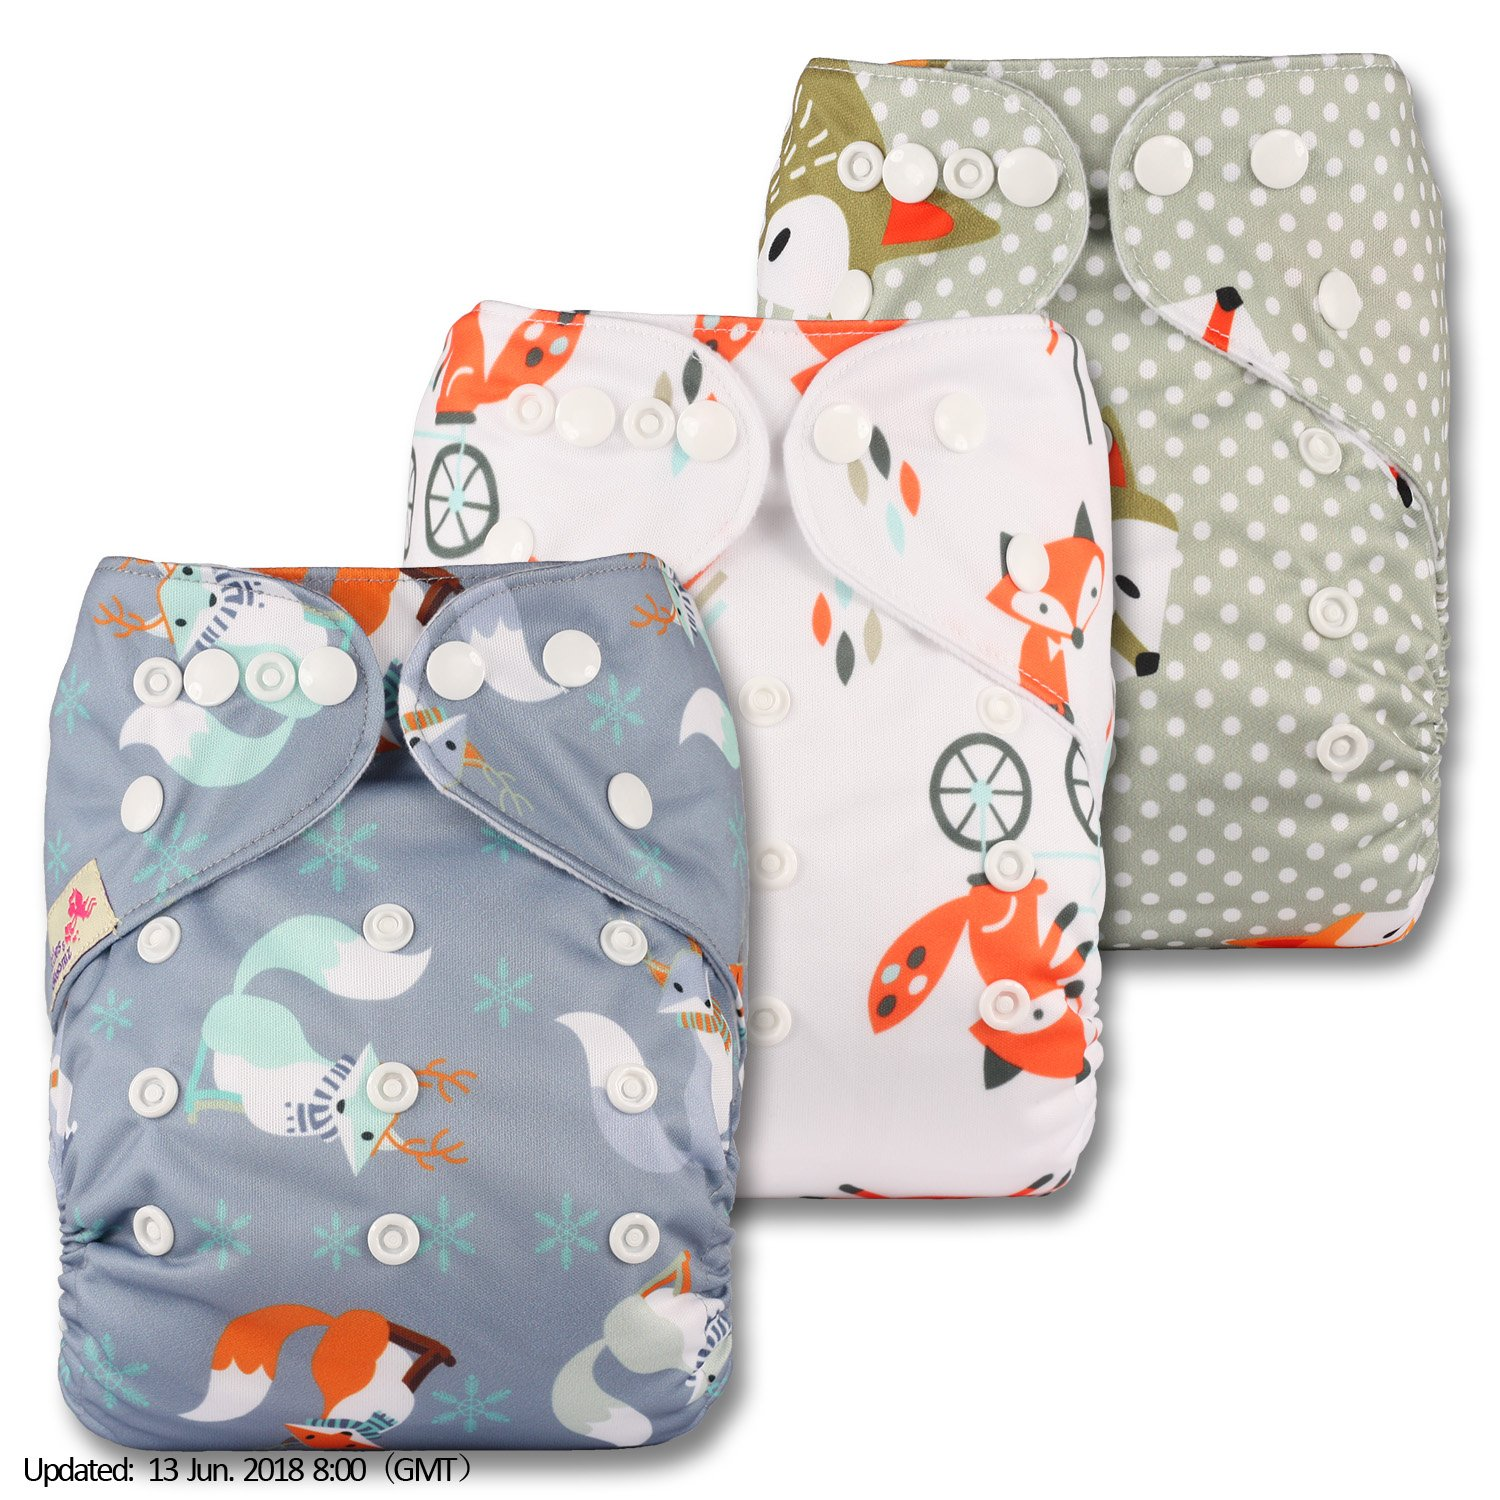 with 6 Microfibre Inserts Reusable Pocket Cloth Nappy Littles /& Bloomz Patterns 309 Fastener: Popper Set of 3